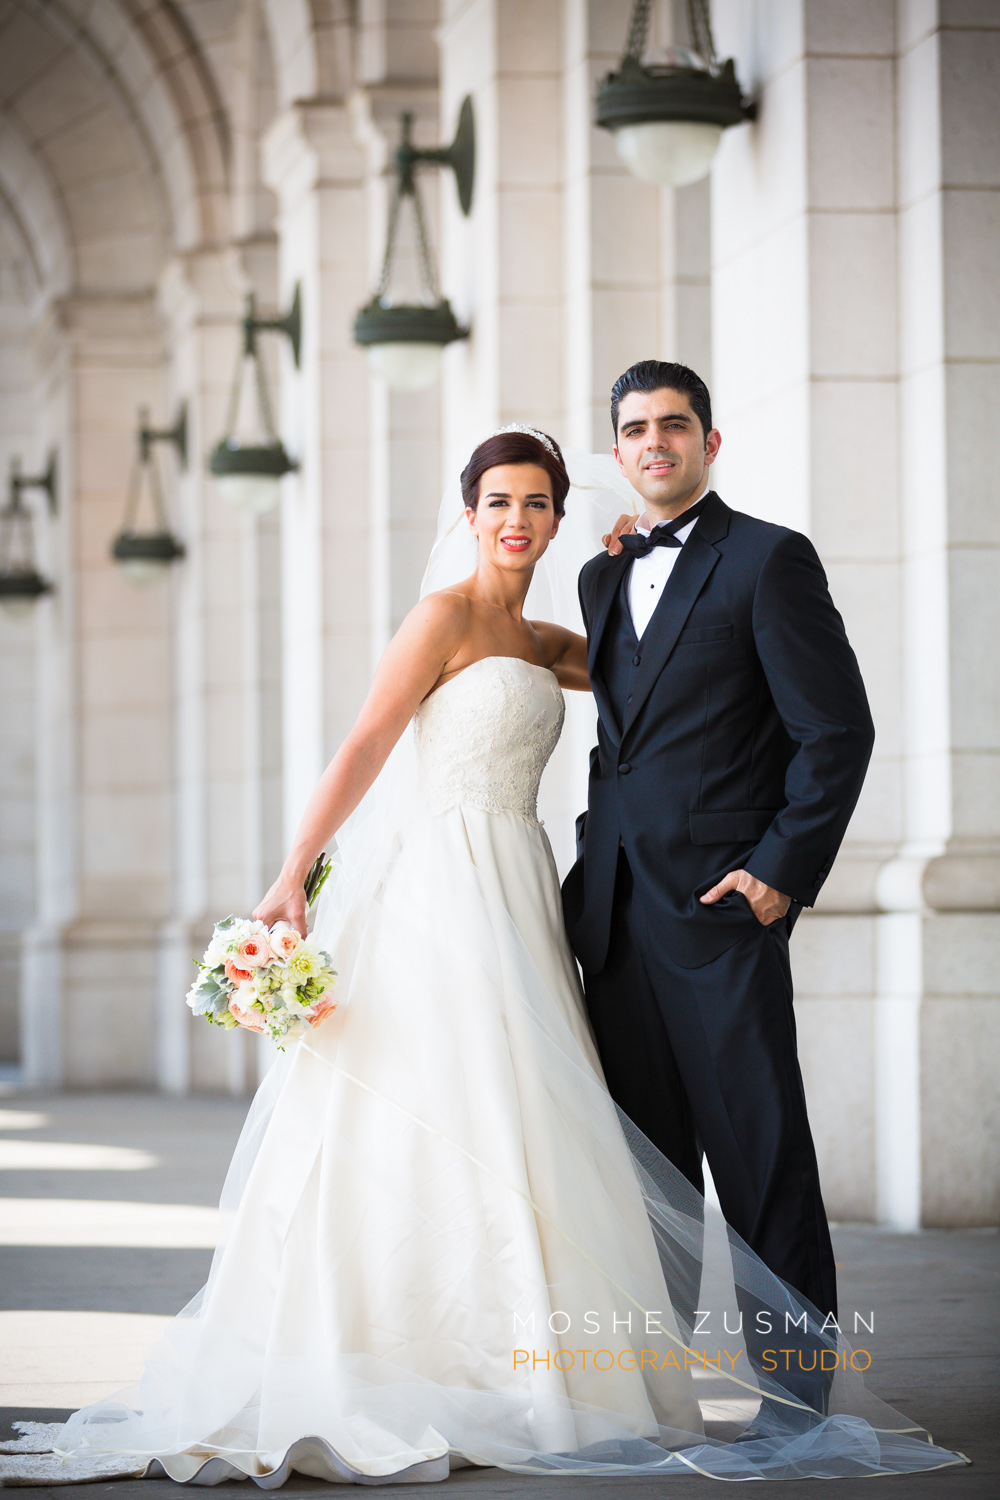 persian-iranian-wedding-sofreh-moshe-zusman-photography-dc-20.jpg